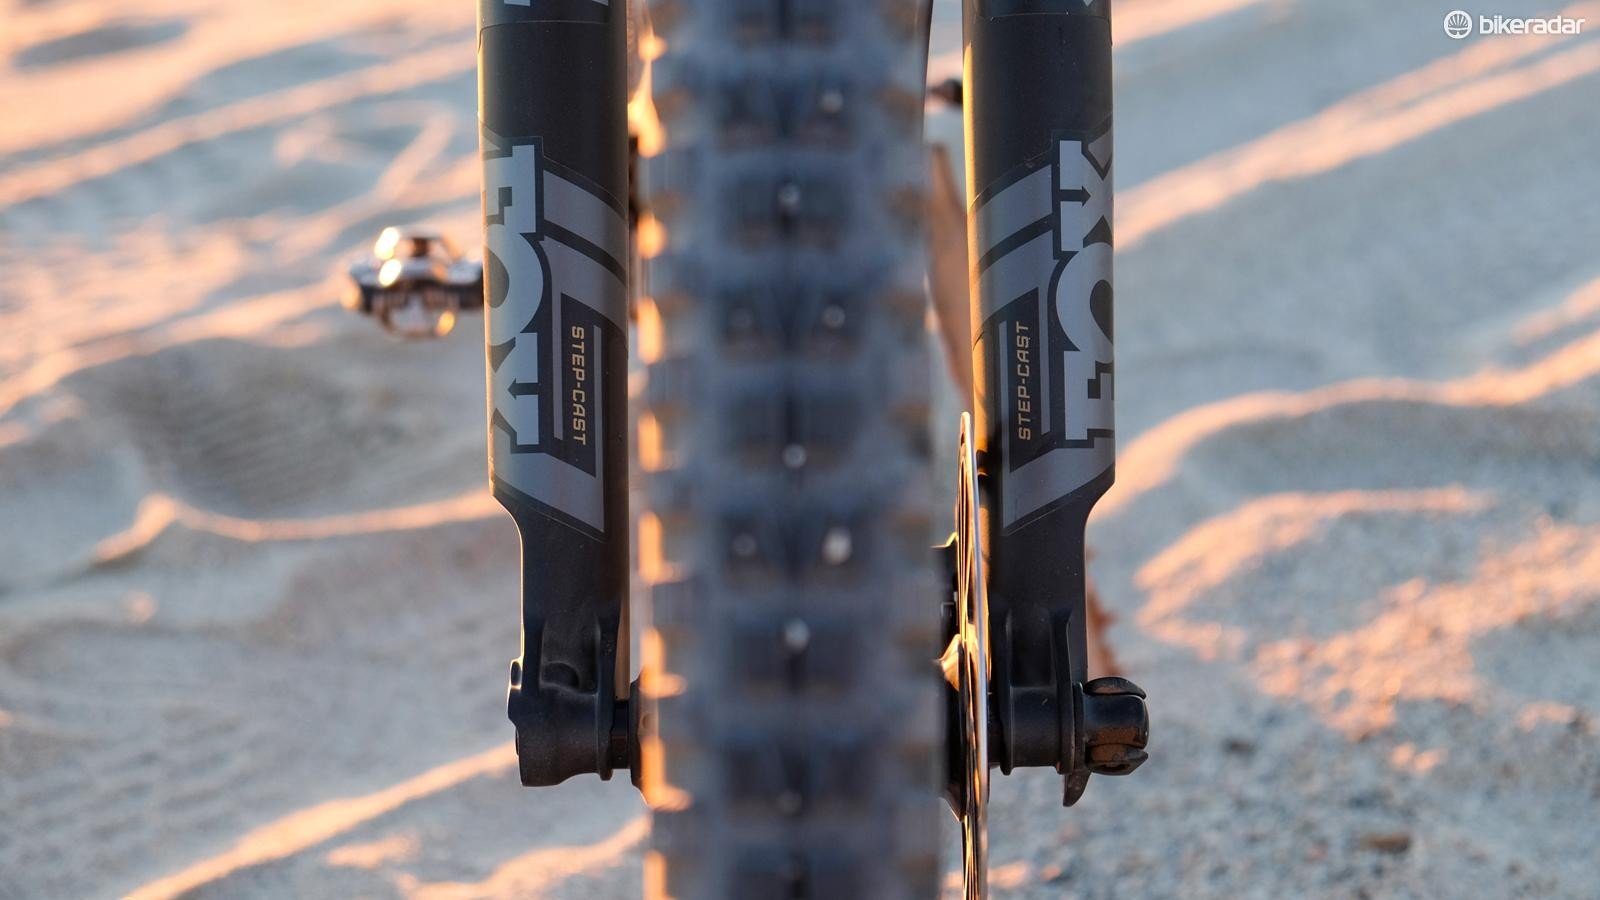 Stepped lower and dedicated 120mm internals make the 34SC lighter than a standard 32mm fork